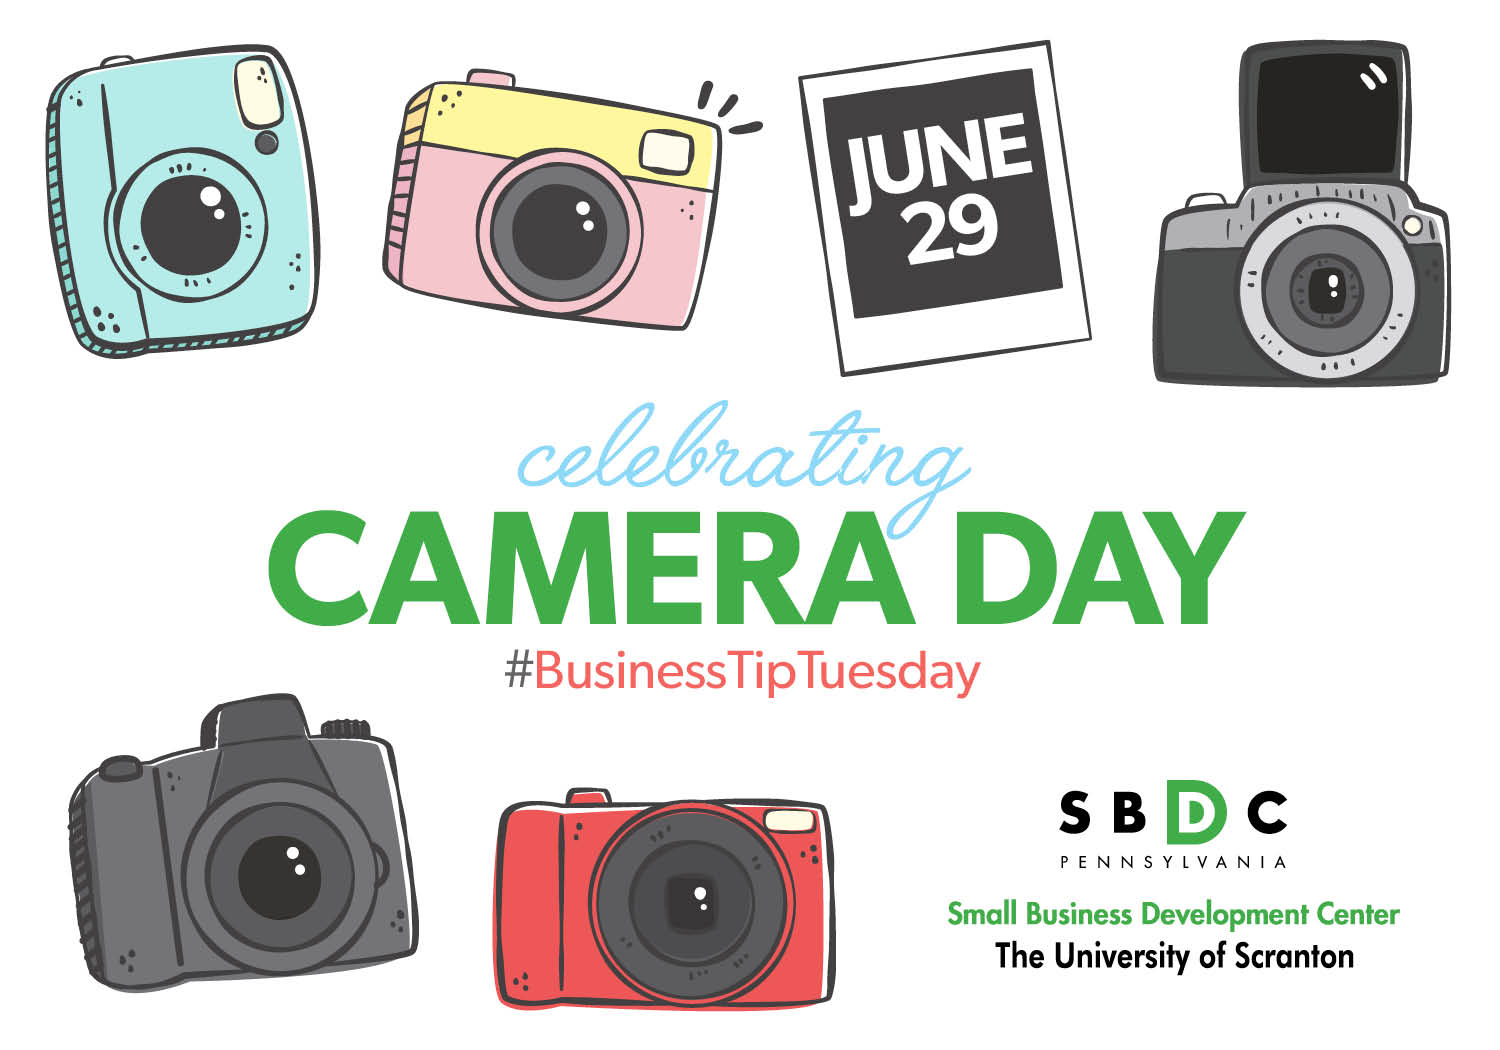 June 29th is #CameraDay – #BusinessTipTuesday